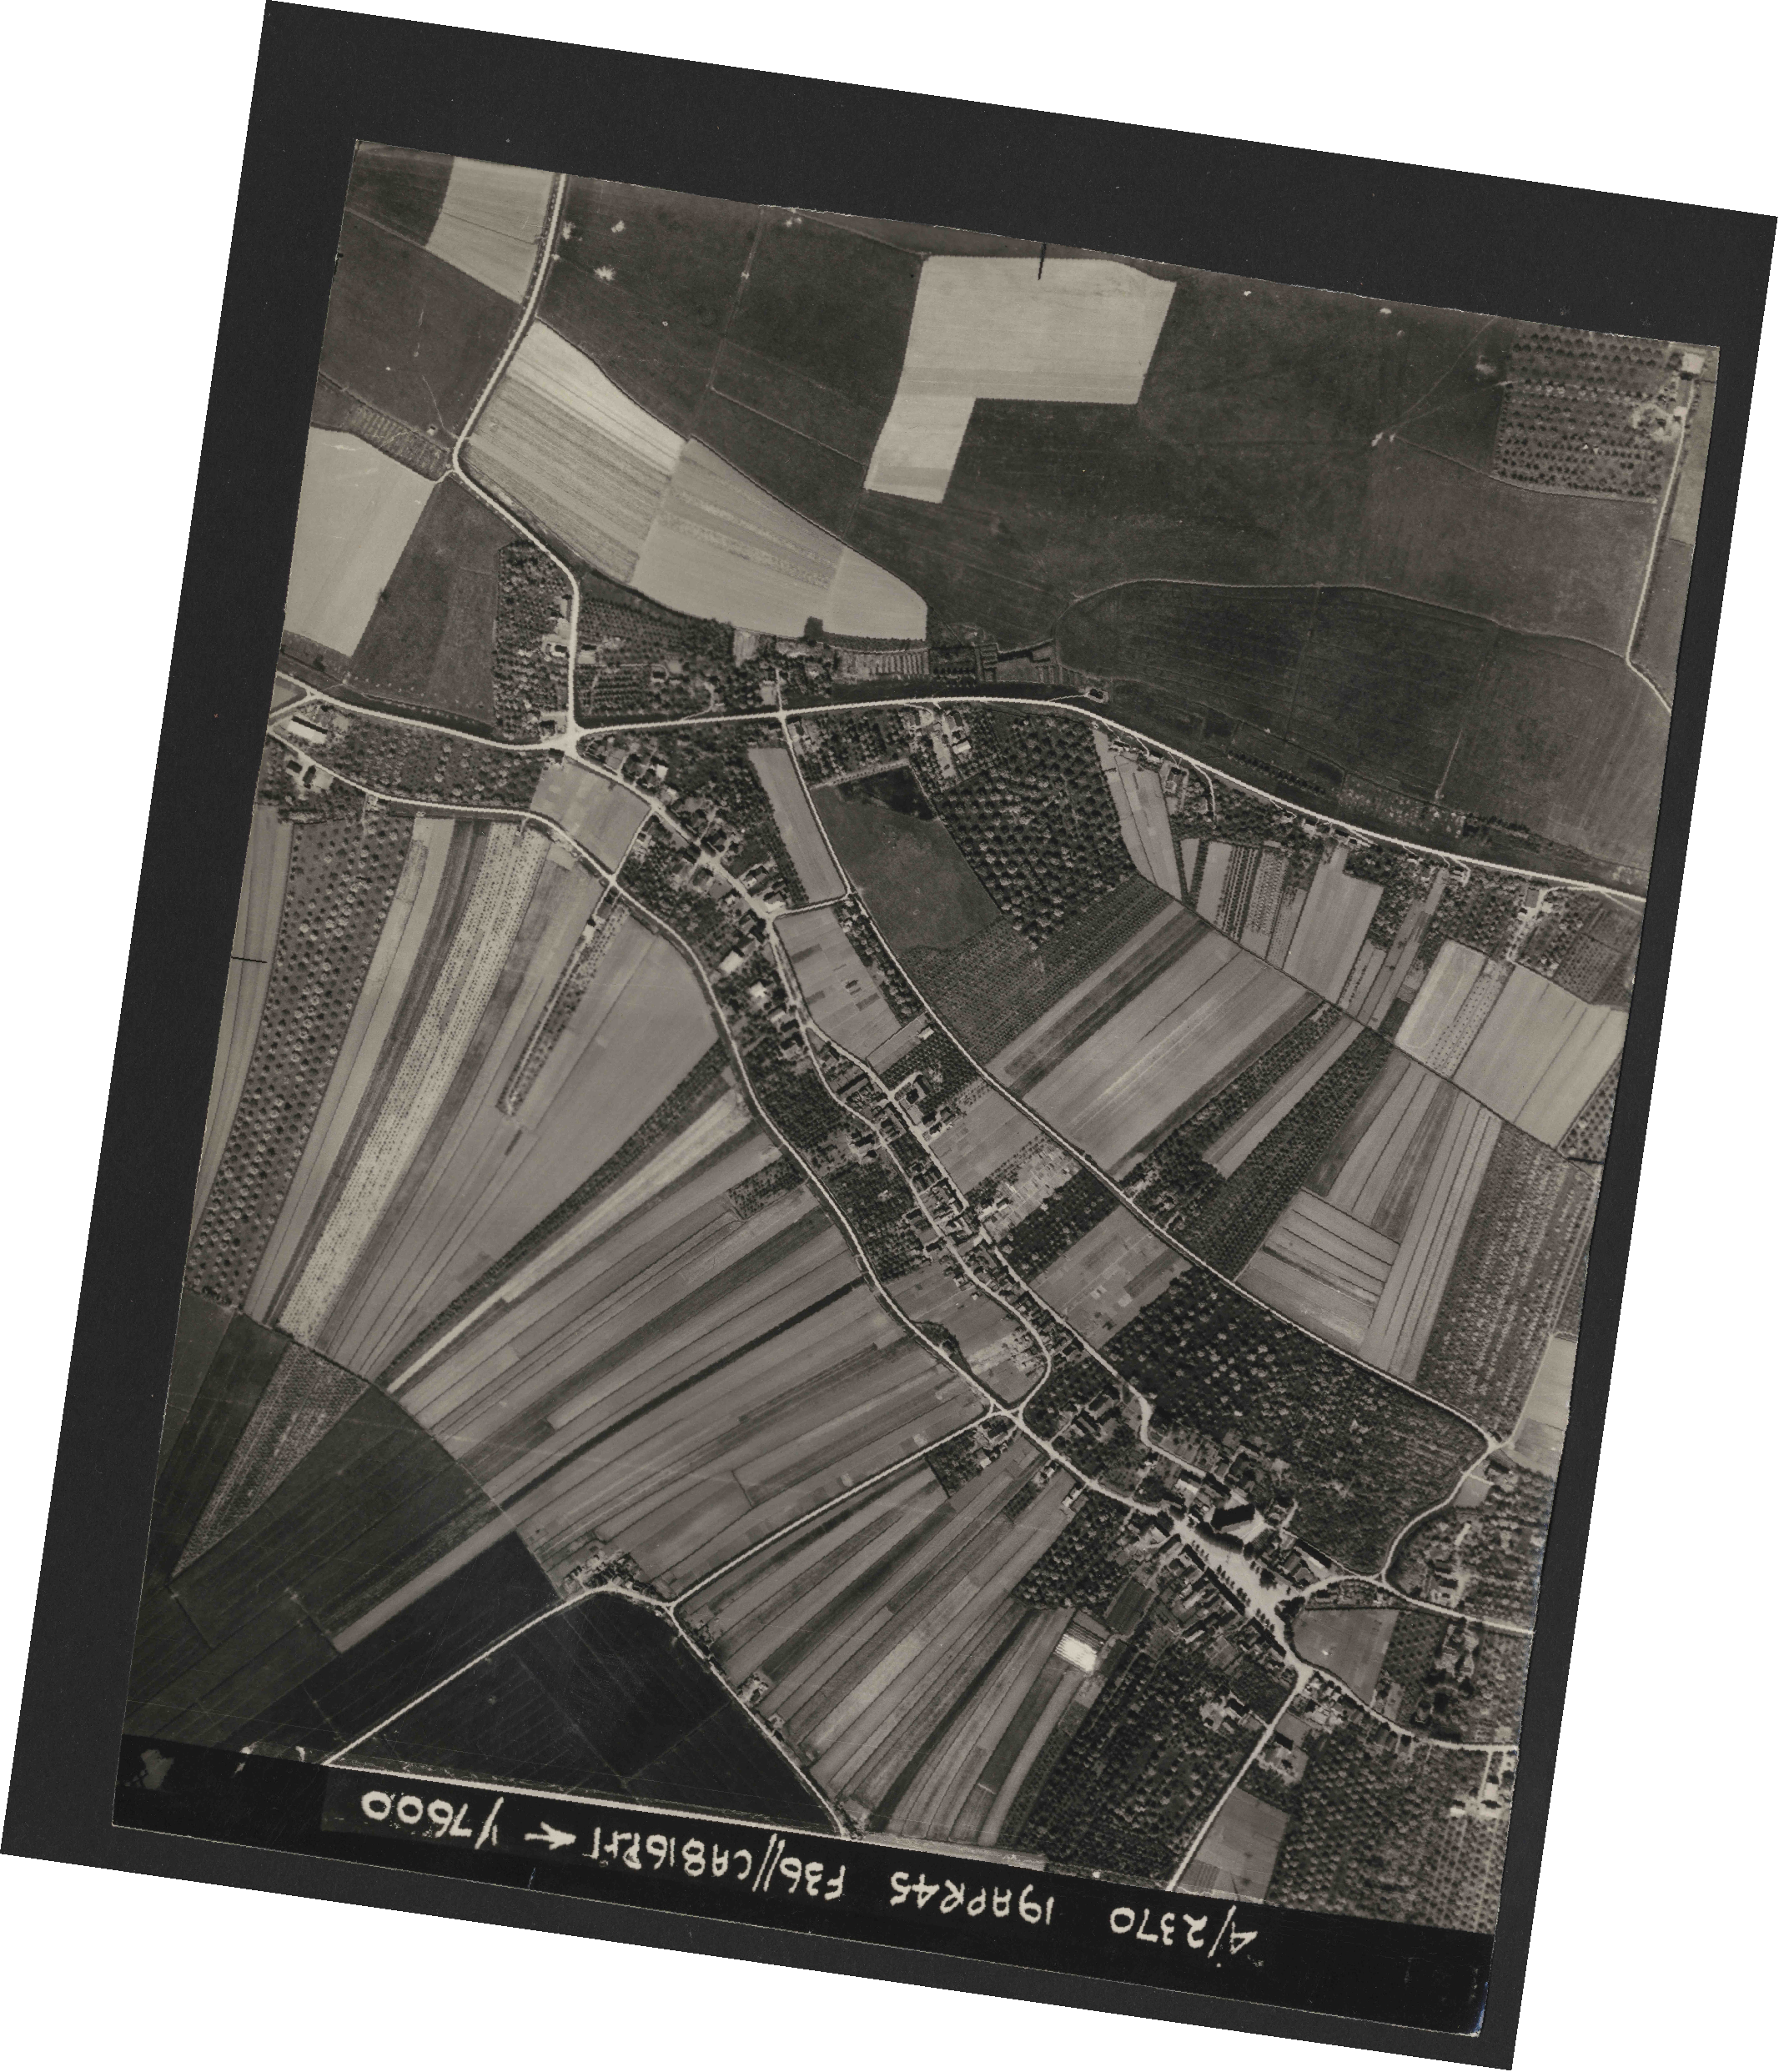 Collection RAF aerial photos 1940-1945 - flight 109, run 05, photo 4154